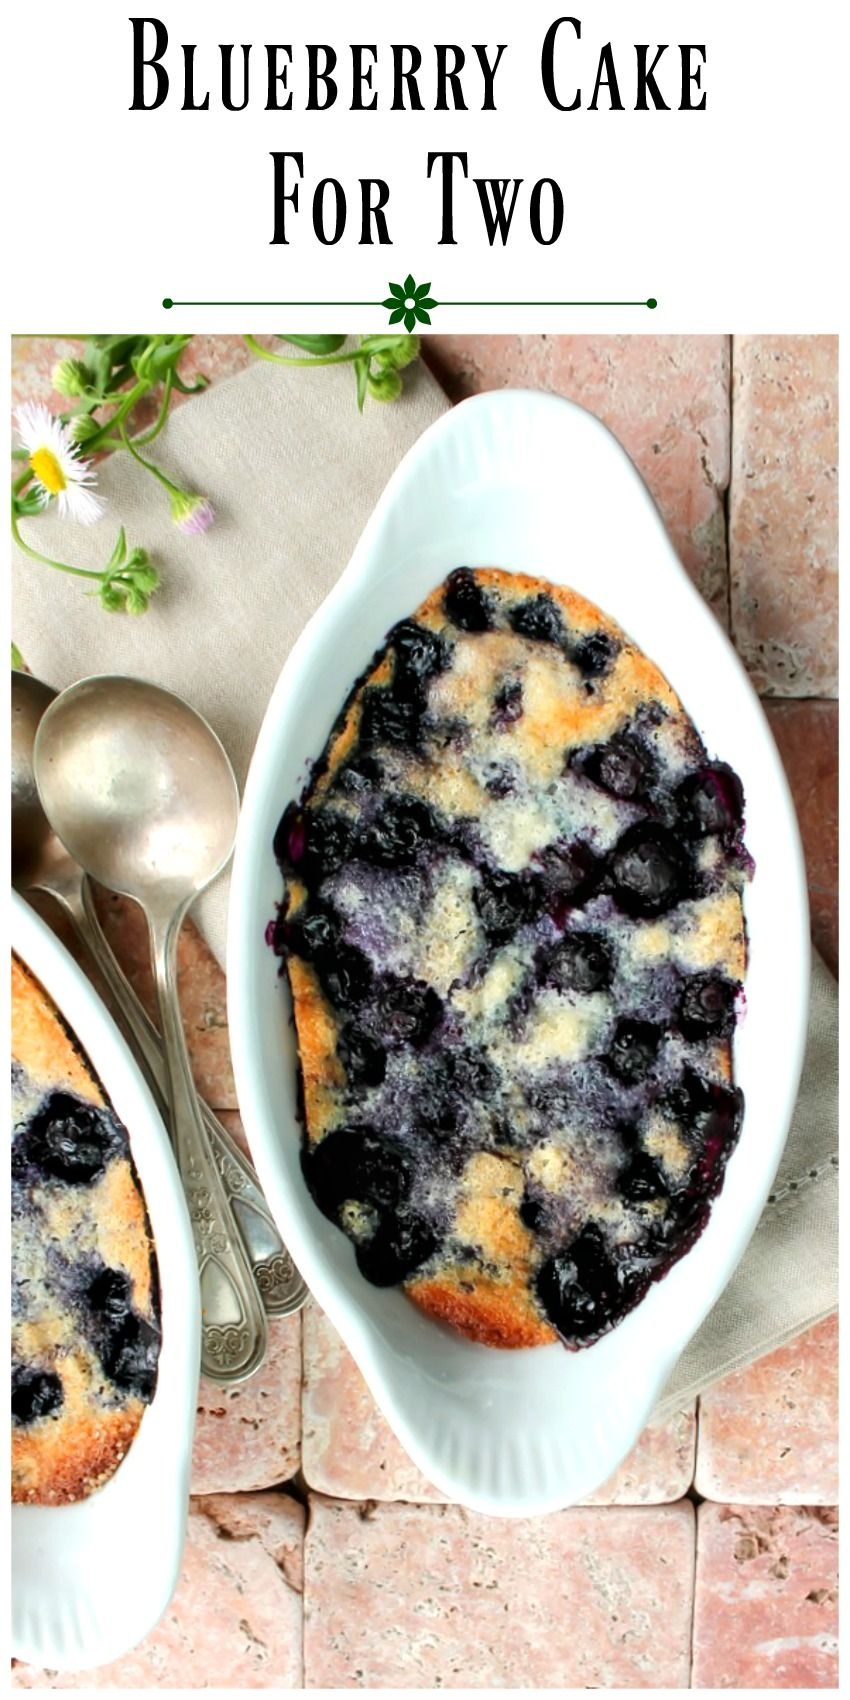 Blueberry Cake for Two – Bunny's Warm Oven